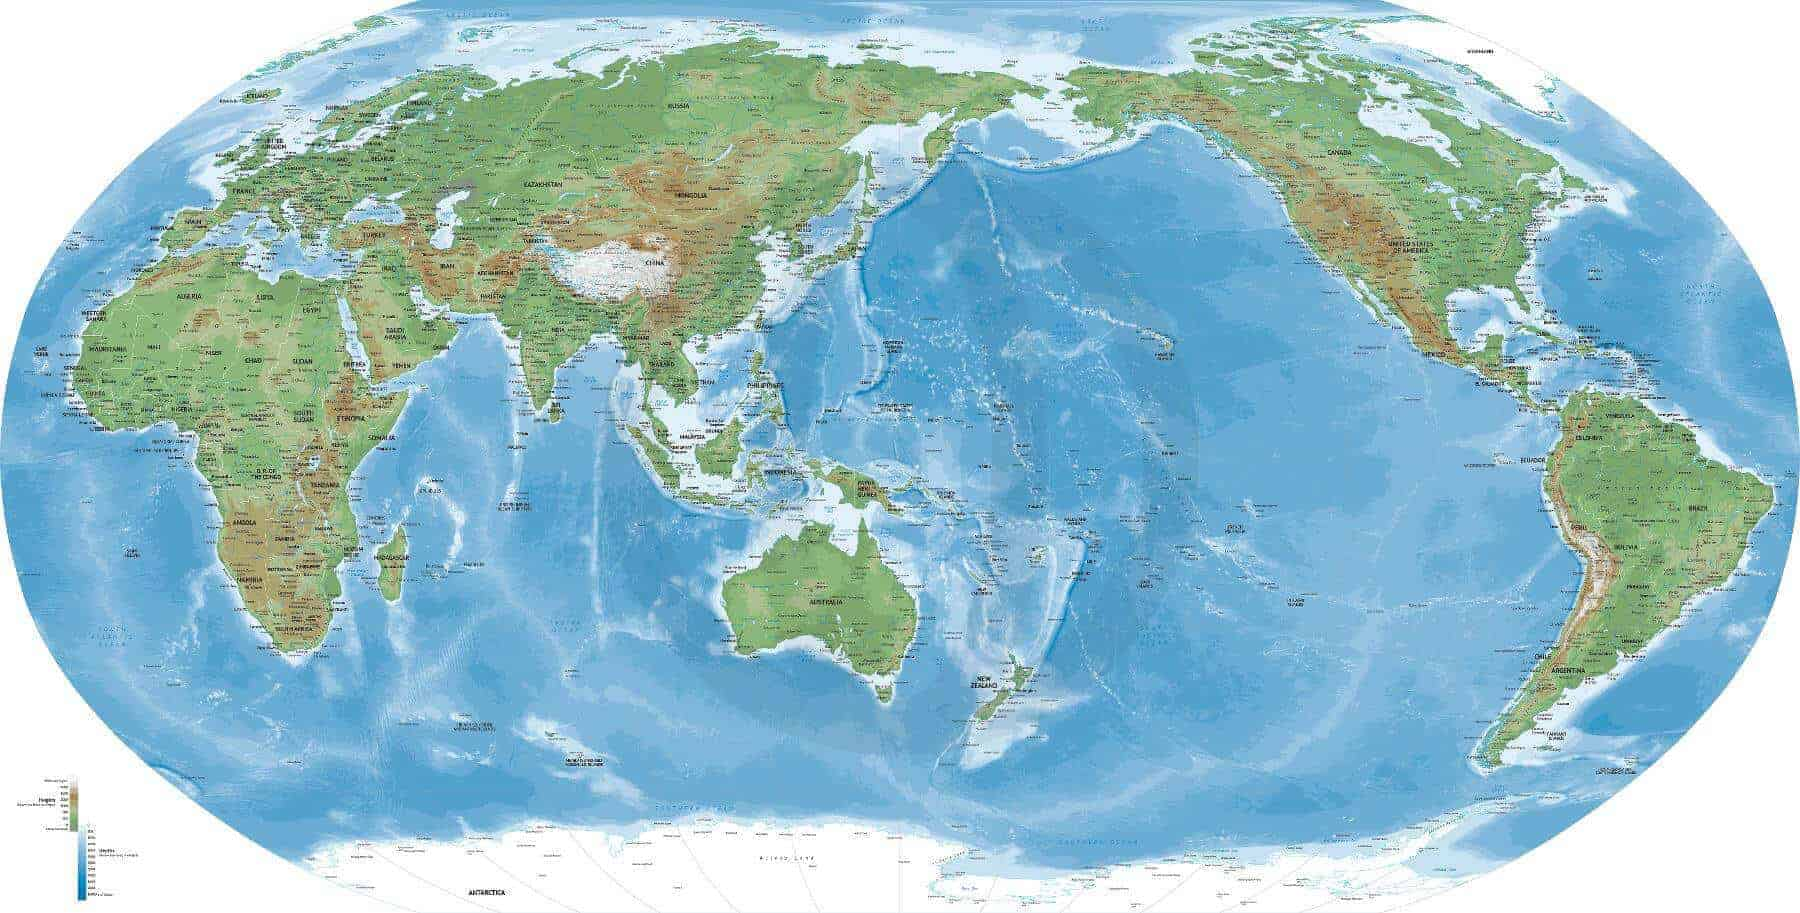 Detailed World Map Robinson Asia-Australia centered | One Stop Map